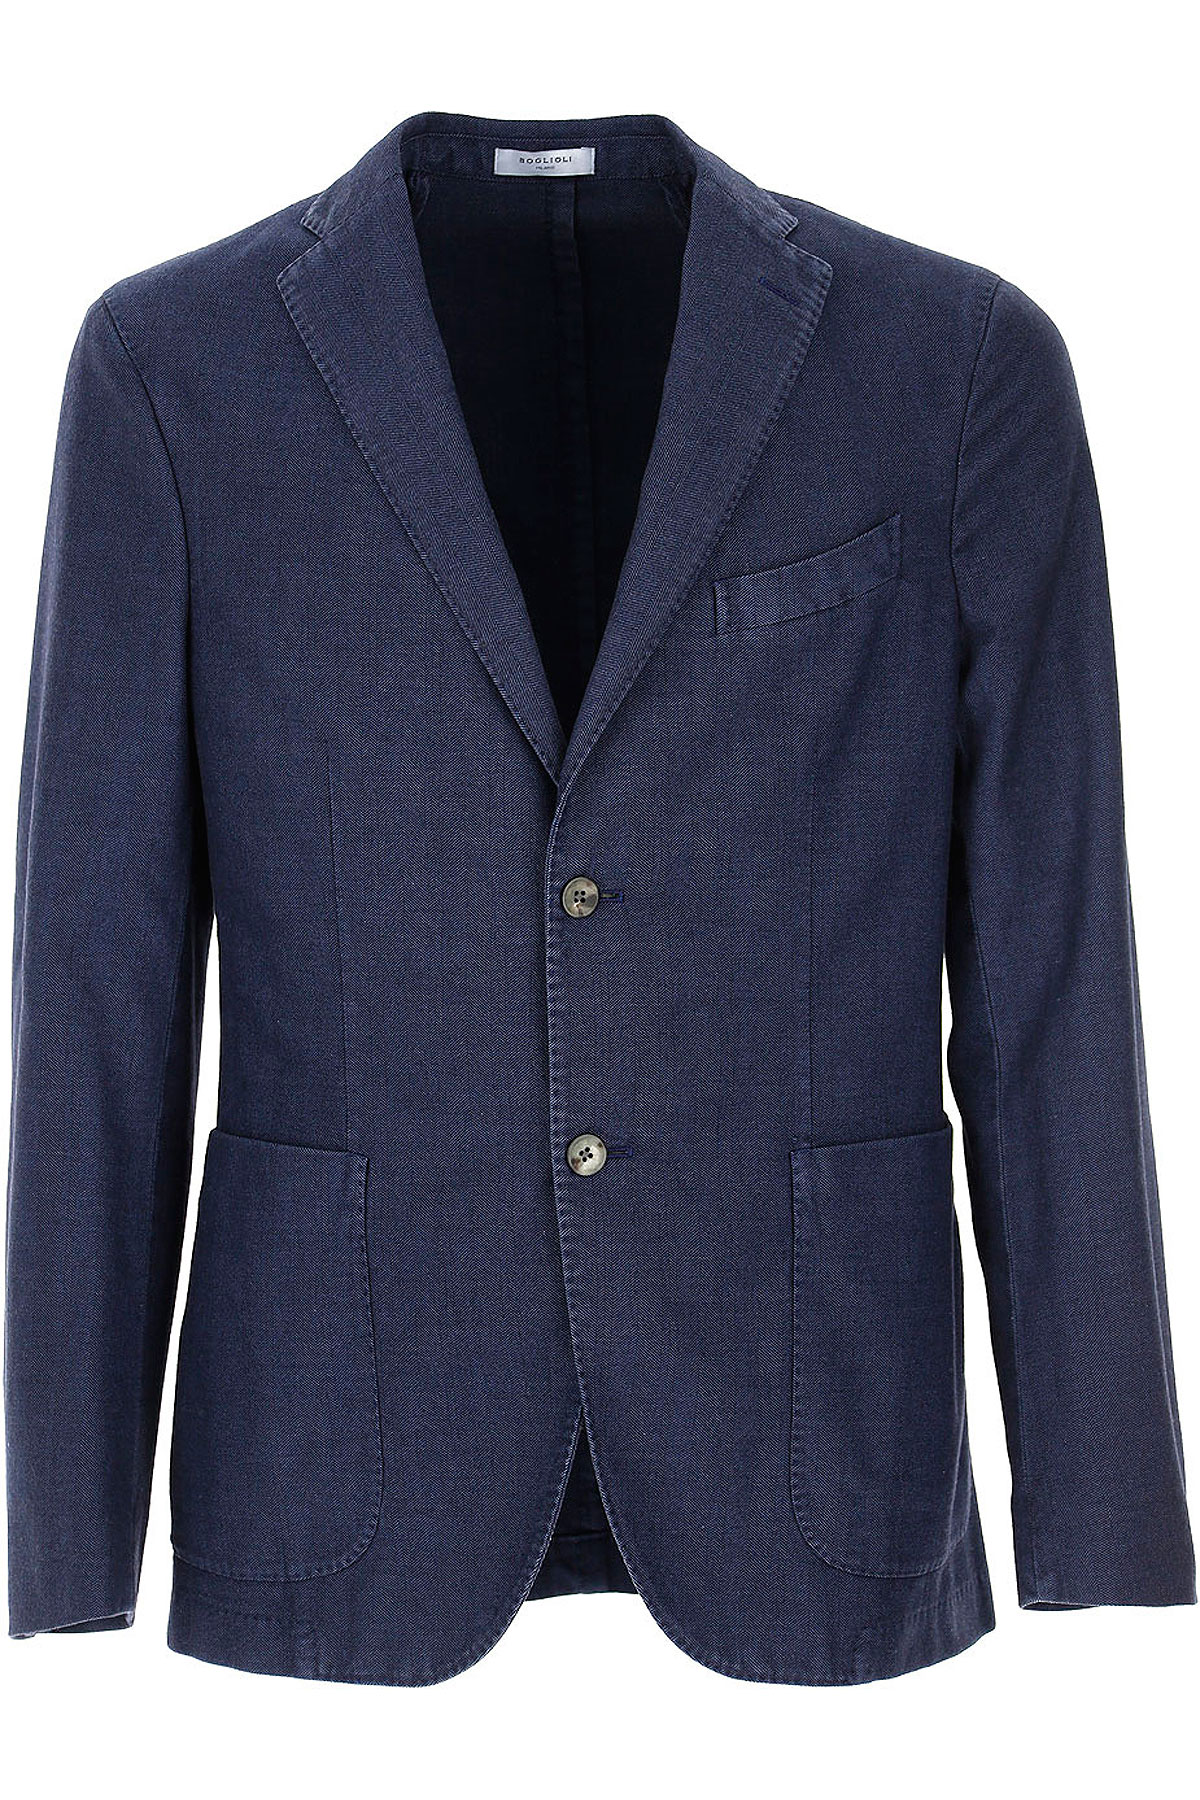 Boglioli Blazer for Men, Sport Coat On Sale, Navy Blue, Cotton, 2019, L M